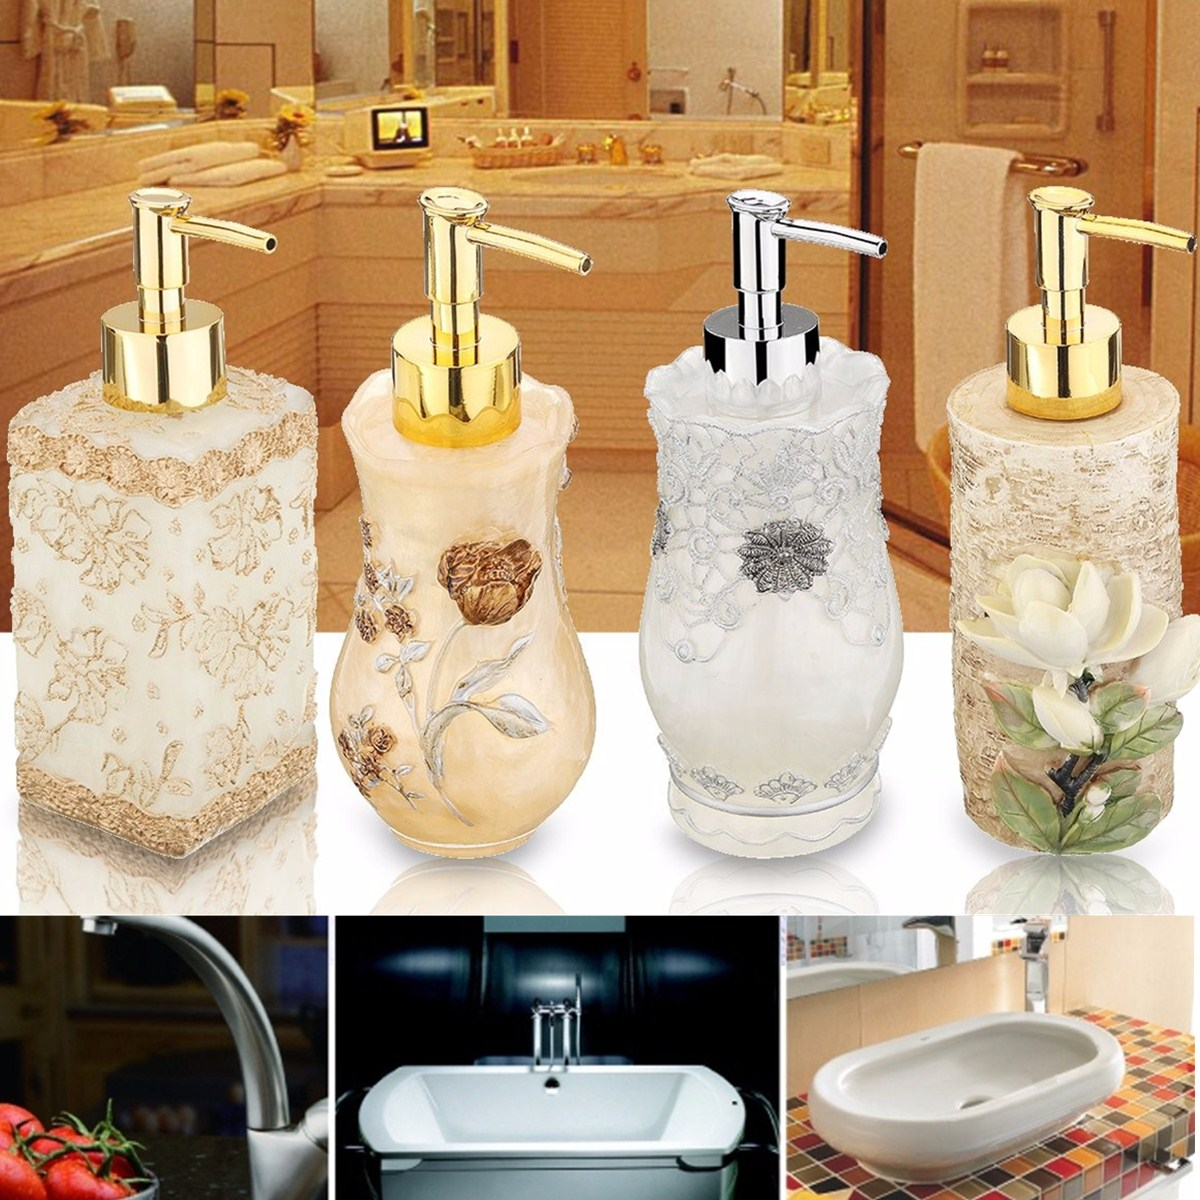 300ML Resin Pumps Bathroom Sink Soap Dispenser Lotion Liquid Shampoo Gel Container Sculptured For Aromatherapy, Home & Kitchen